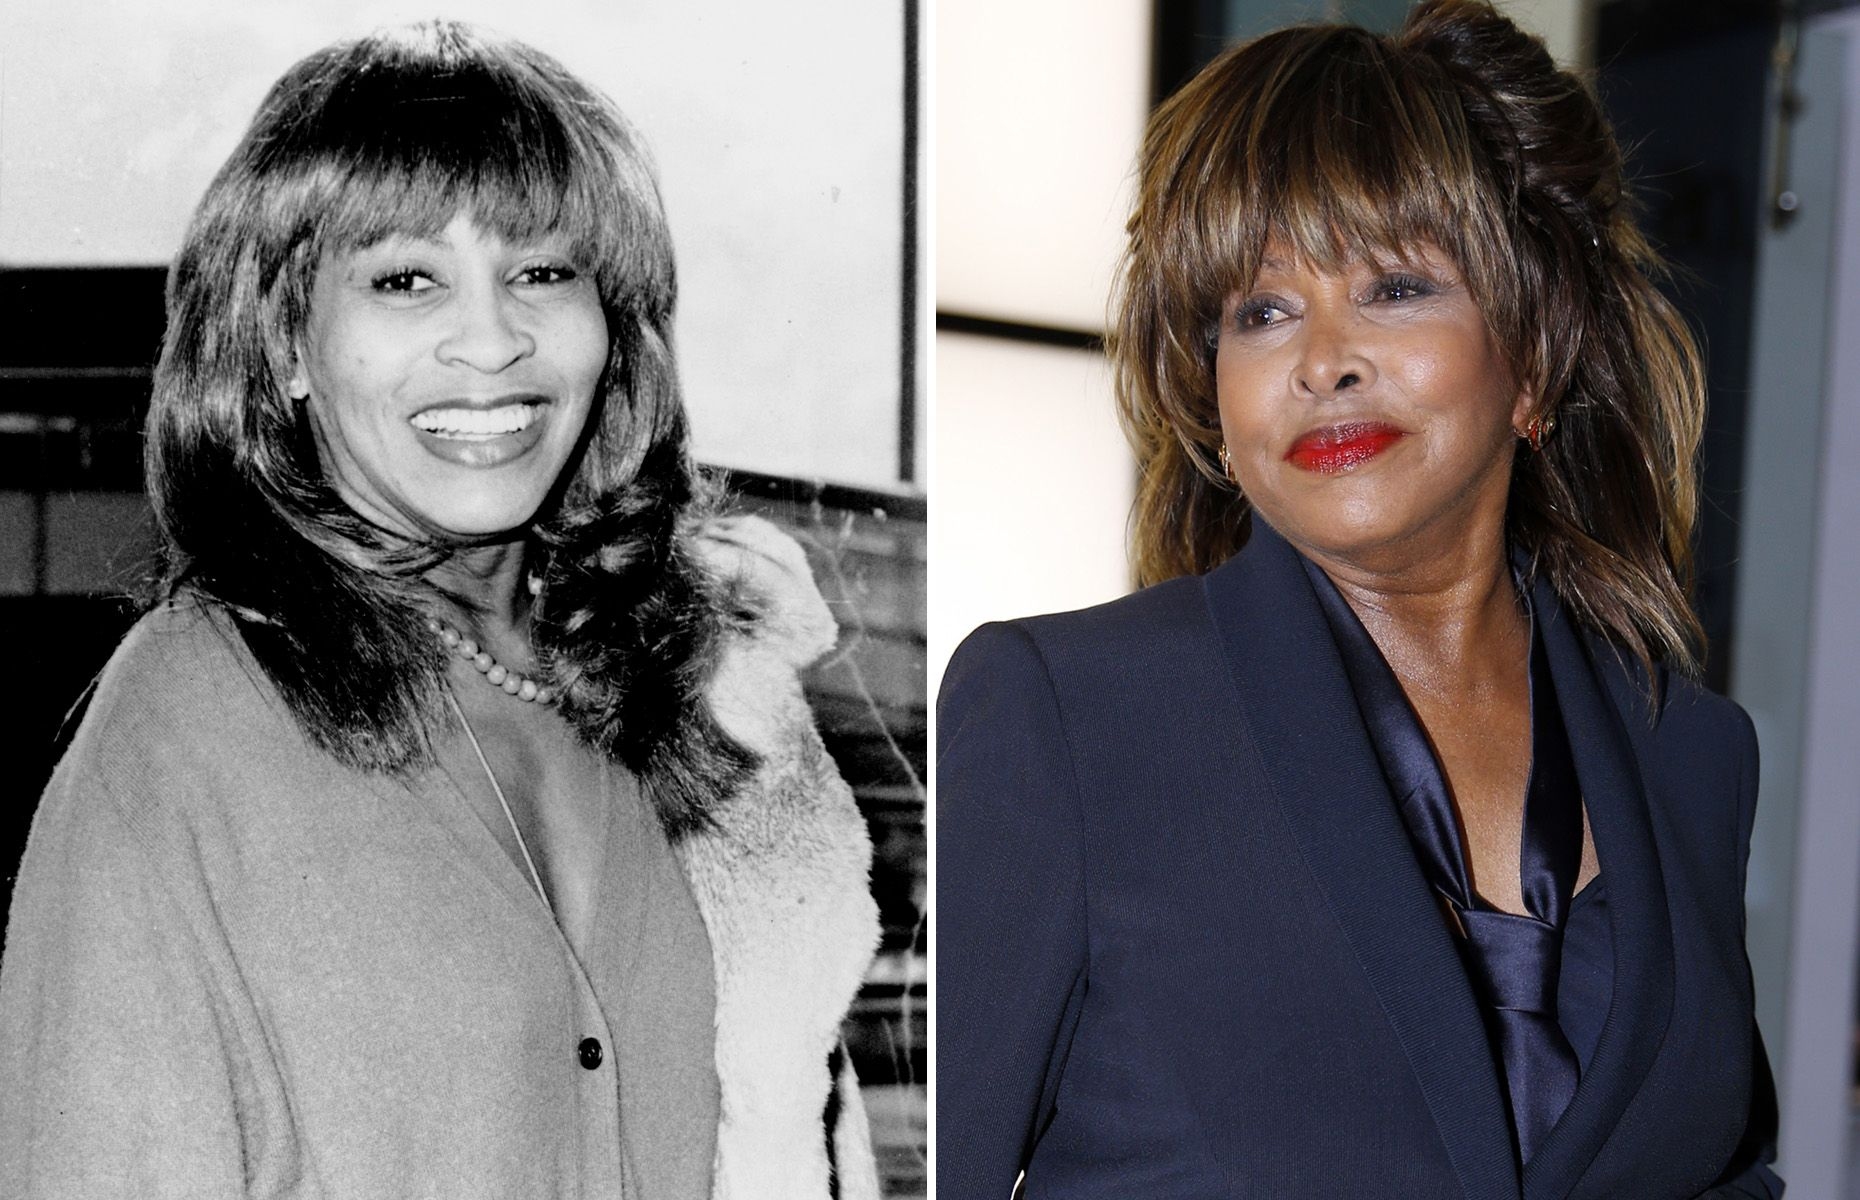 Music artists of the '70s Then and now Tina Turner (1979